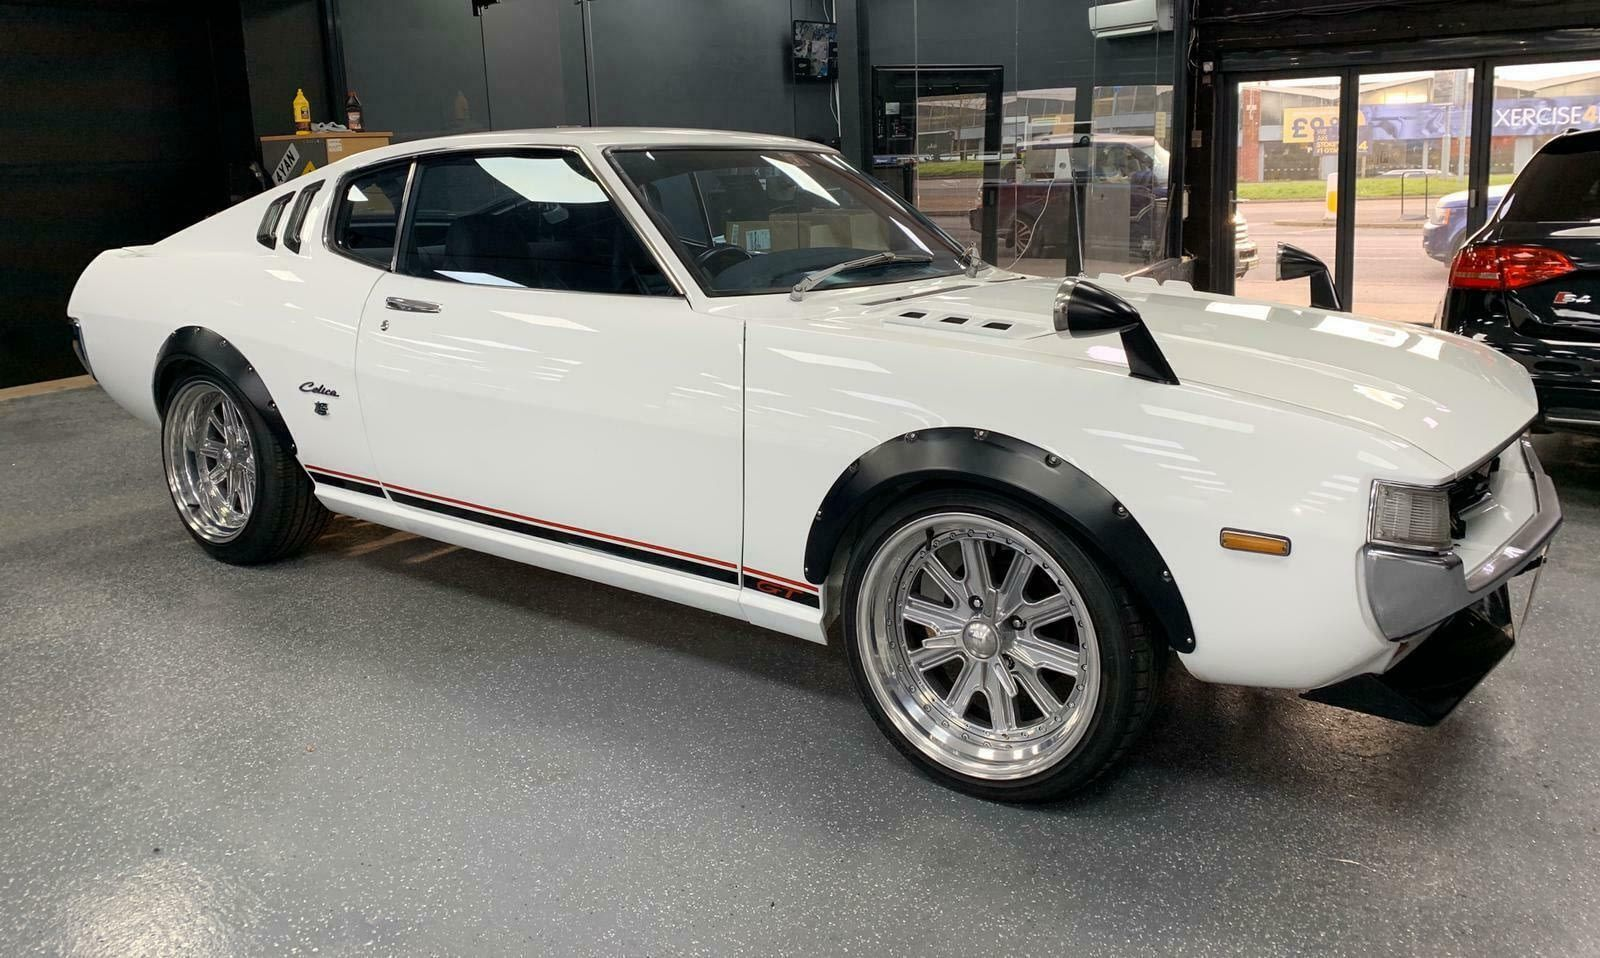 Restored 1975 Toyota Celica 2000gt Ra25 Series A Very Rare Beast Not To Be Missed Only Covered Only 39k 1 Owner Keeper From New In 2020 Toyota Celica Toyota Retro Cars